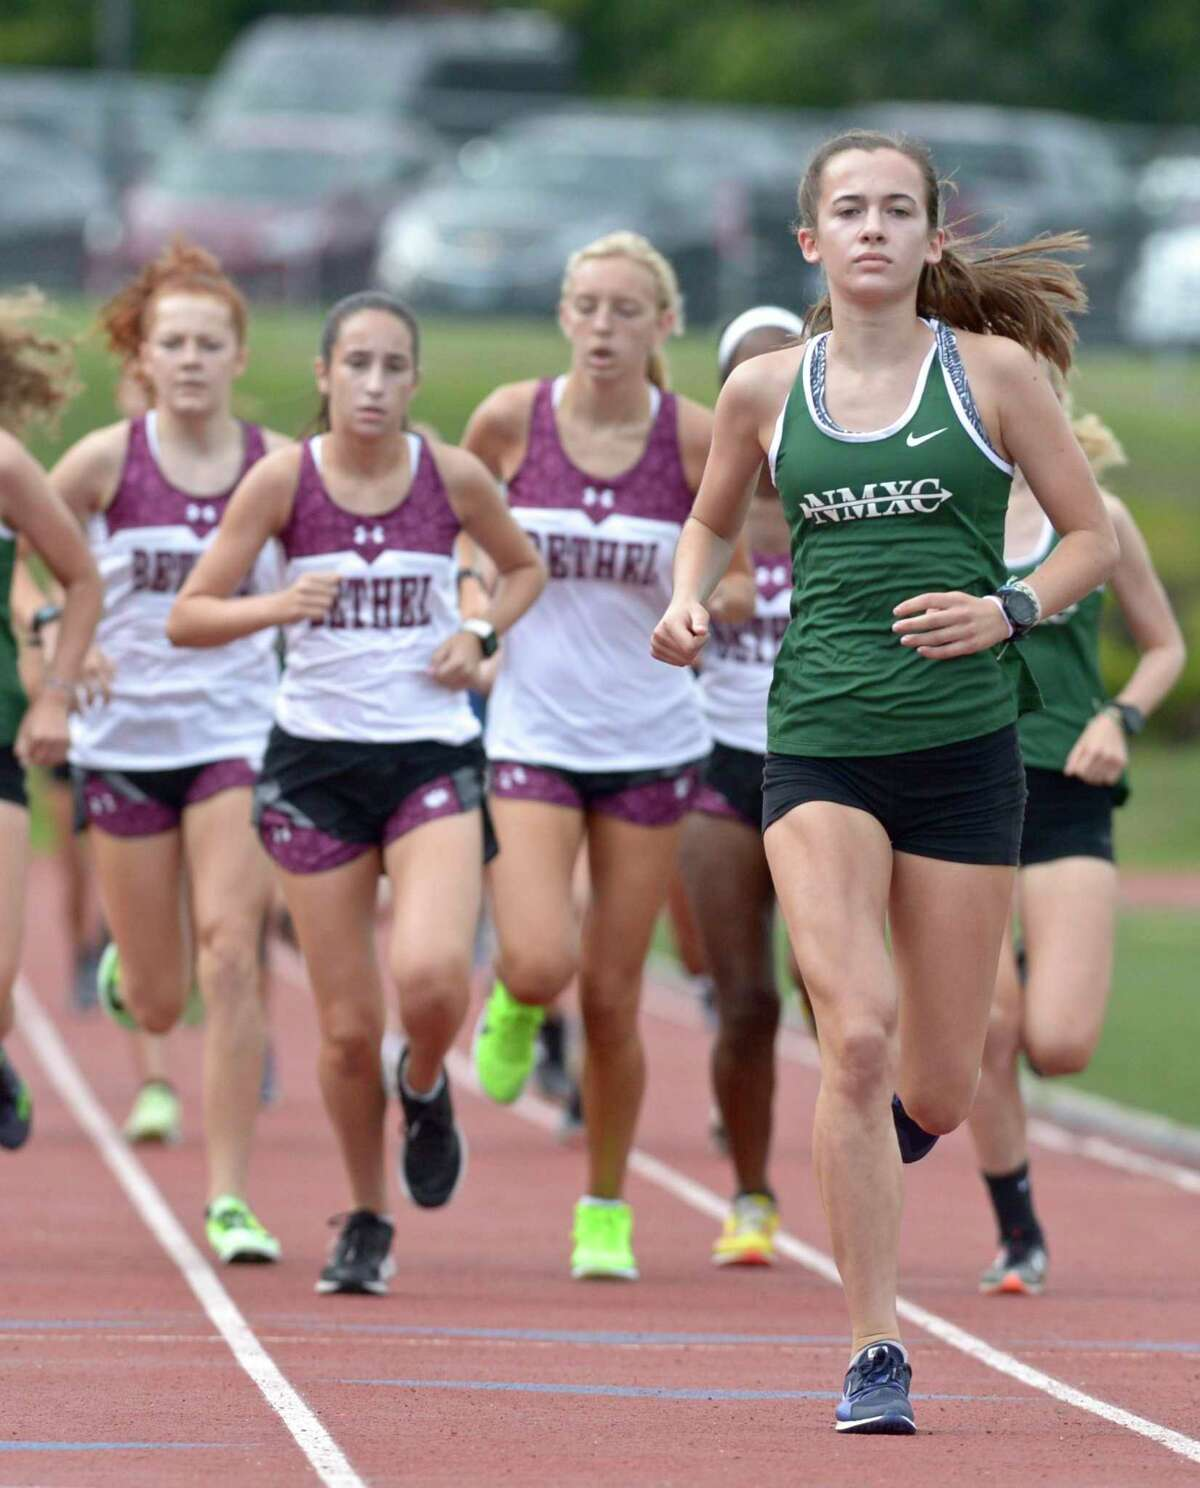 New Milford's Claire Daniels, right, finished first in a meet with Bethel and Brookfield earlier this season.